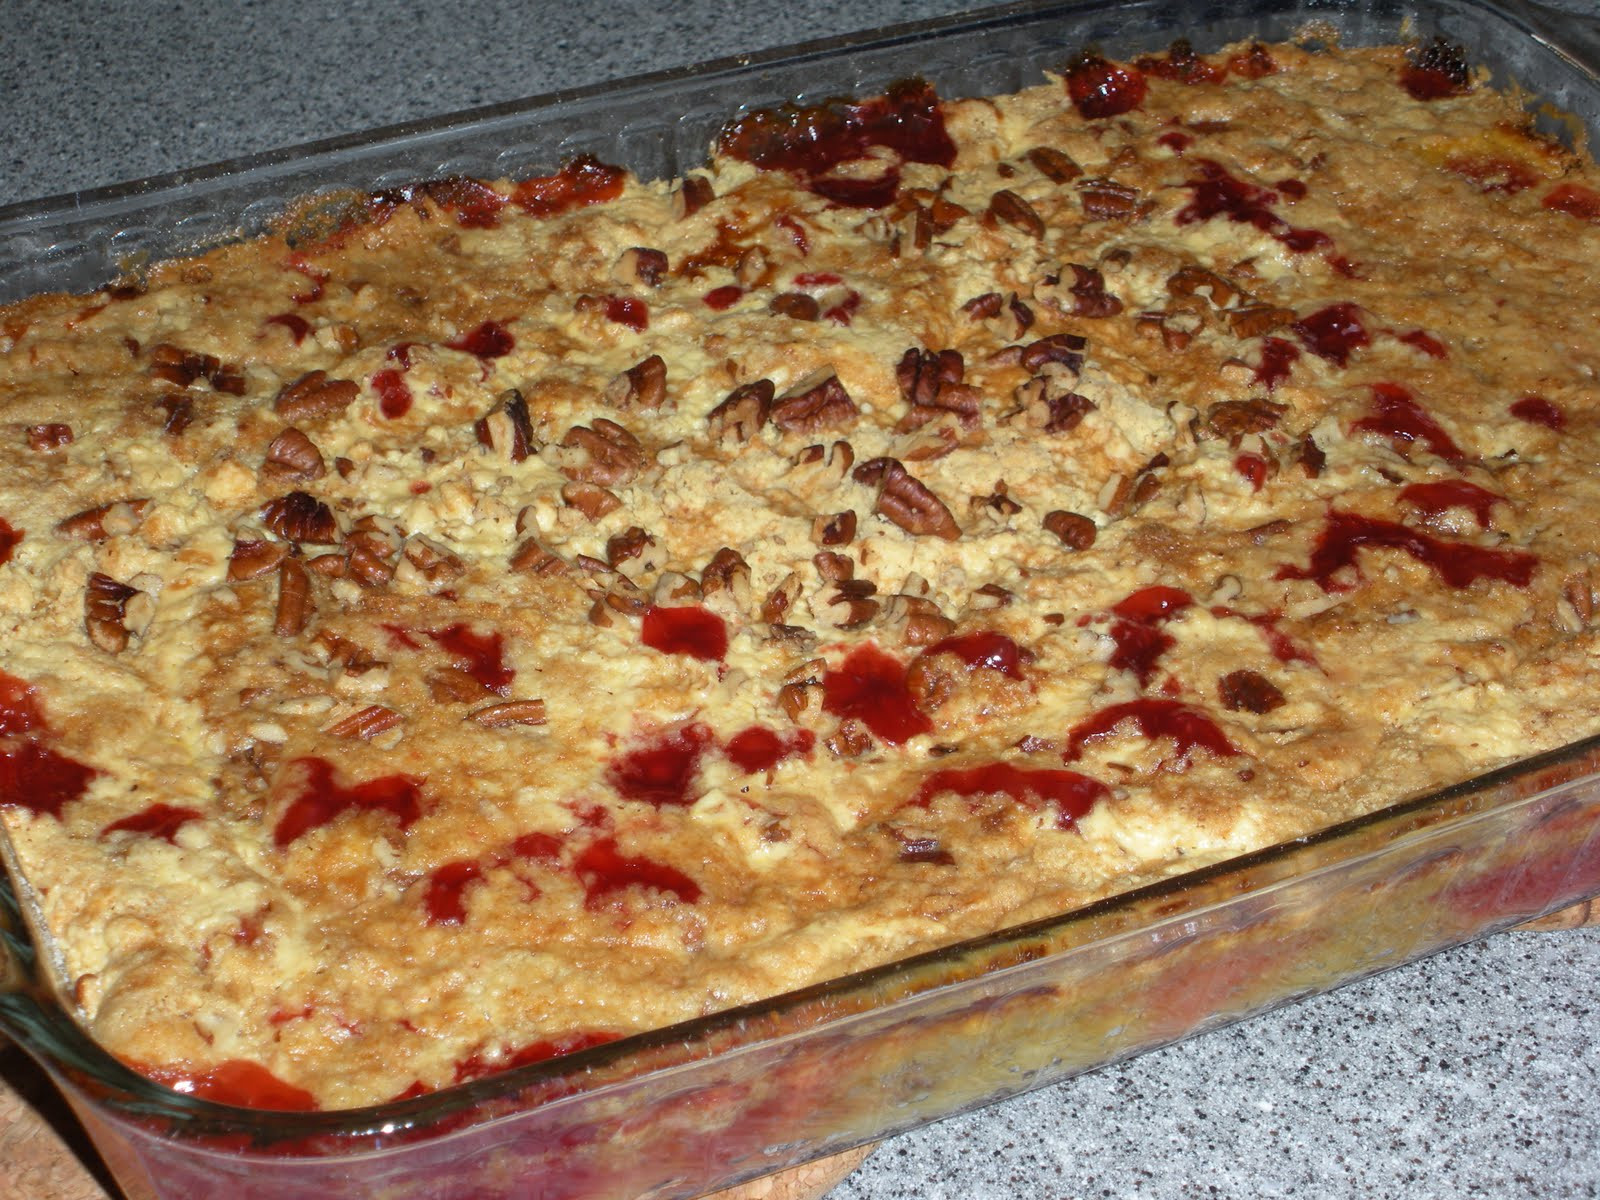 Pineapple Dump Cake  NOT A REAL HOUSEWIFE Cherry Pineapple Dump Cake